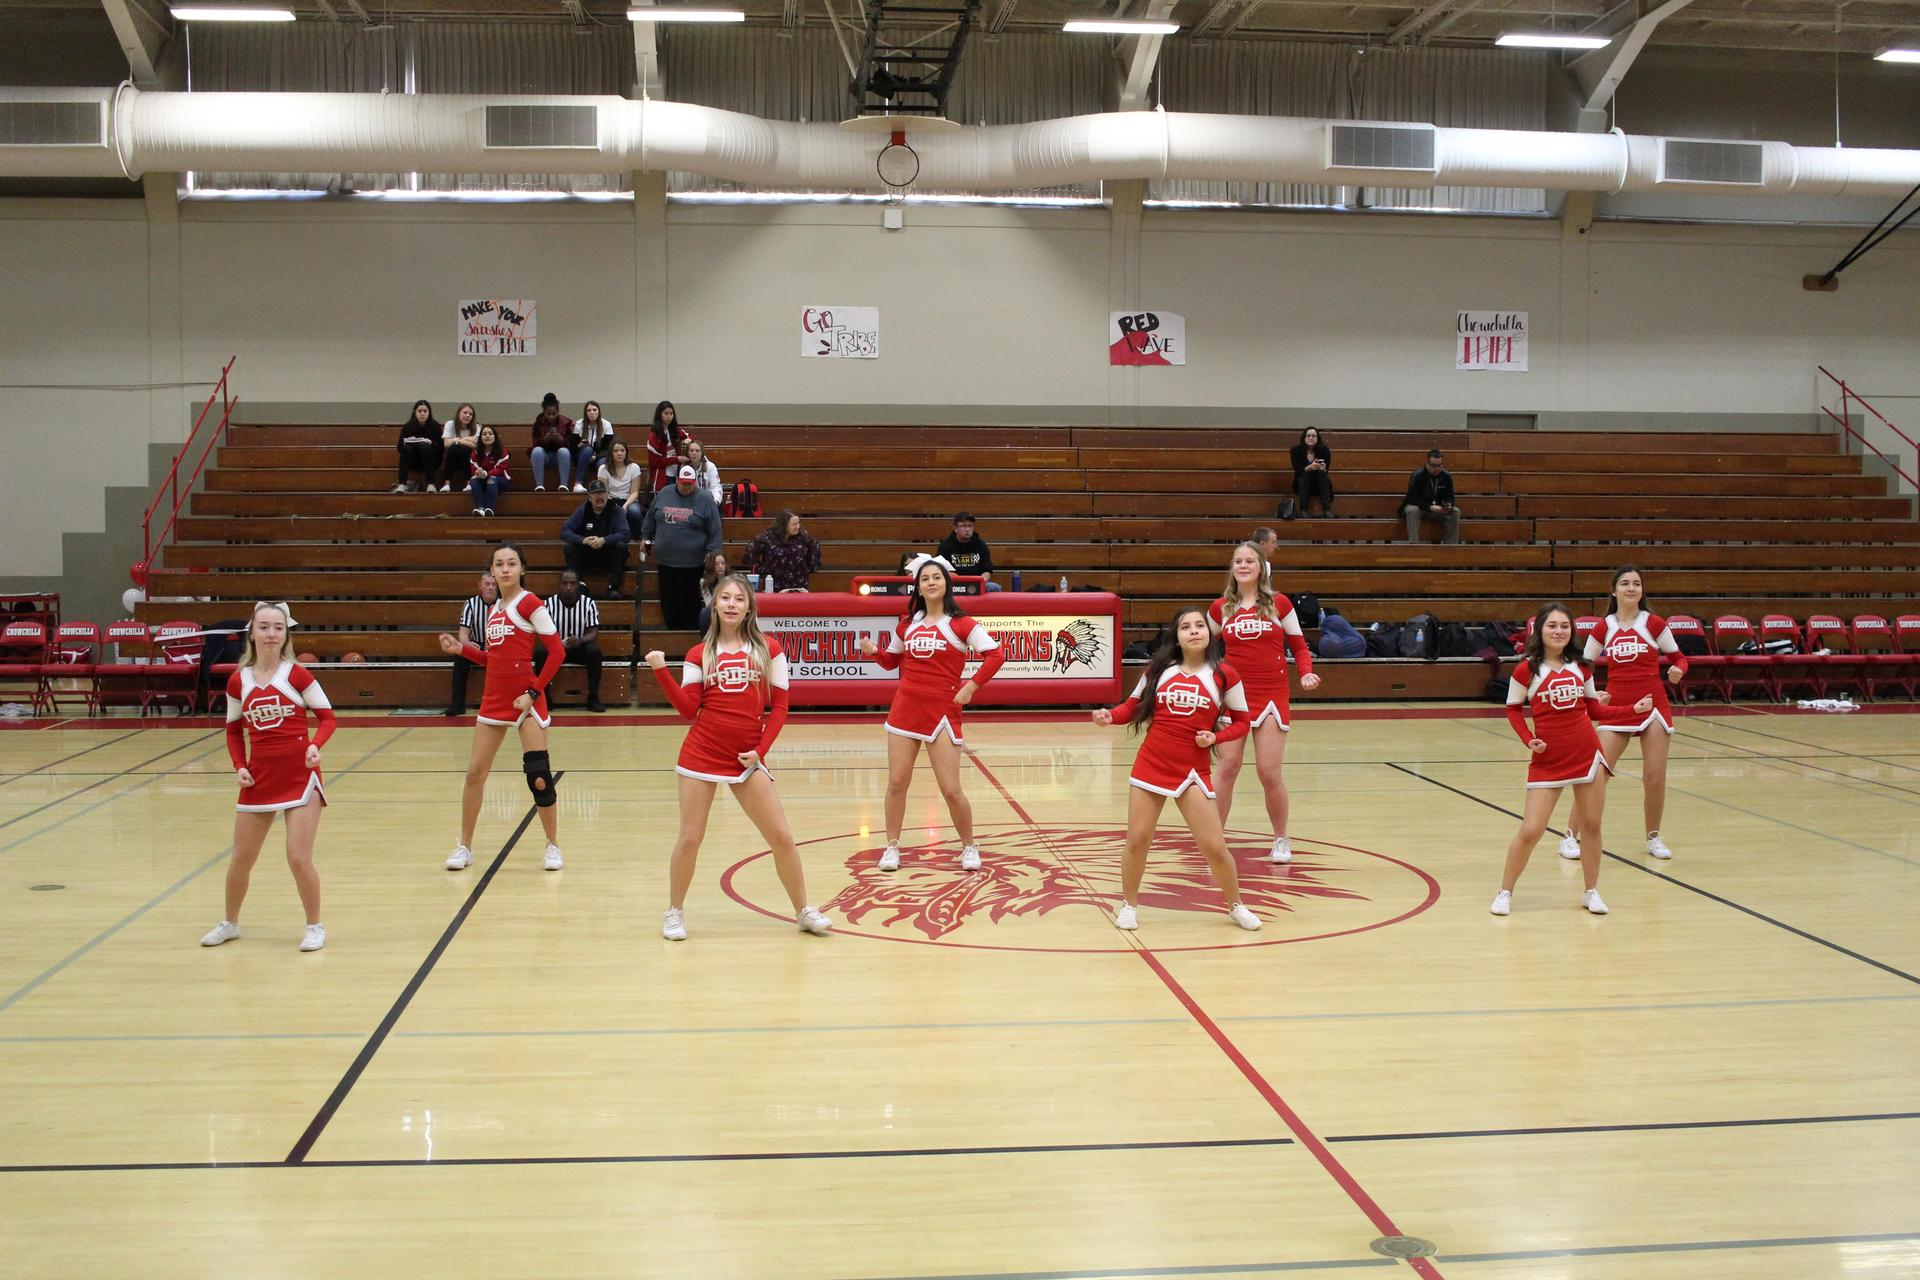 Cheerleaders at Washington Union Game